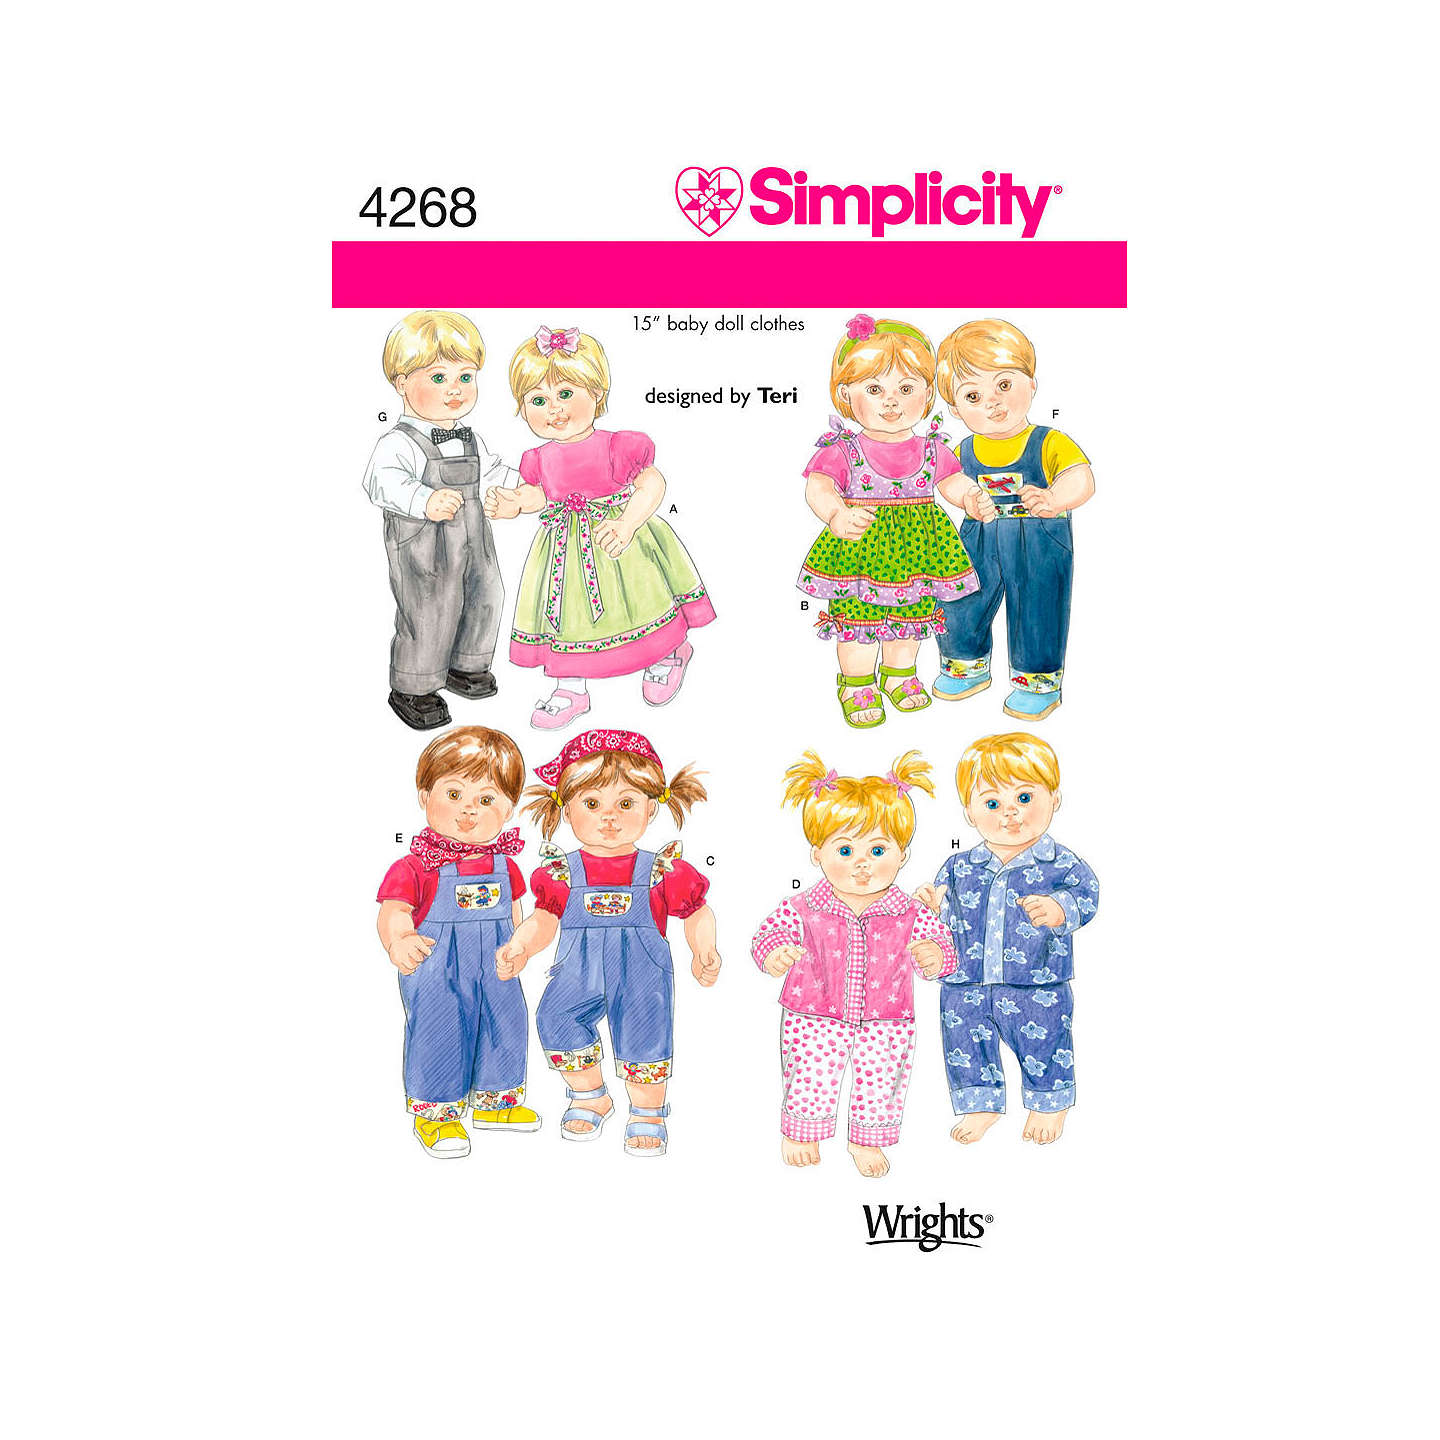 Simplicity Doll Clothes Sewing Pattern 4268 at John Lewis